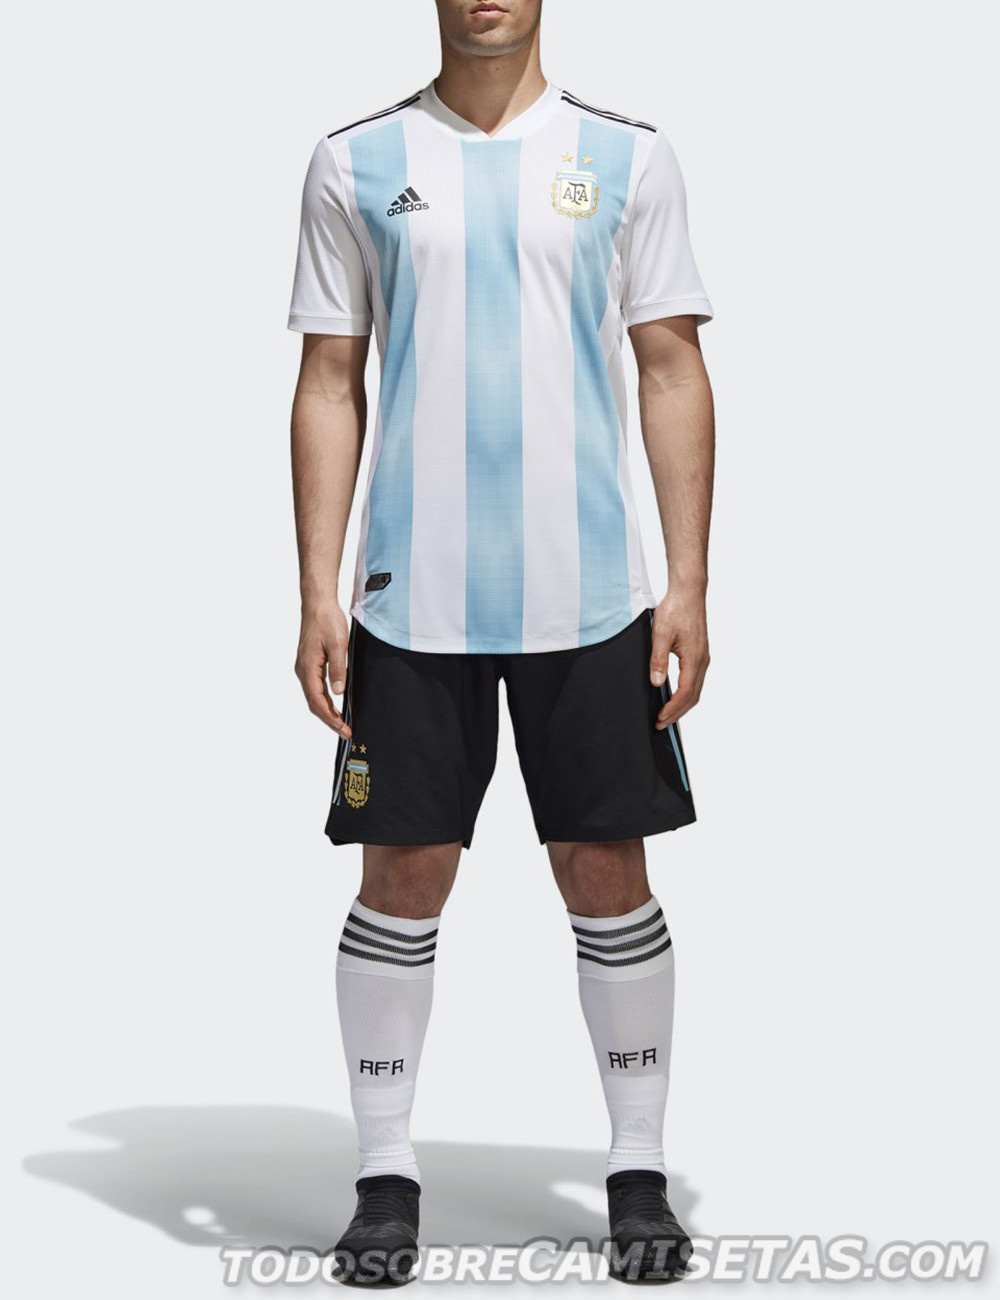 Argentina-2018-adidas-world-cup-new-home-kit-9.jpg